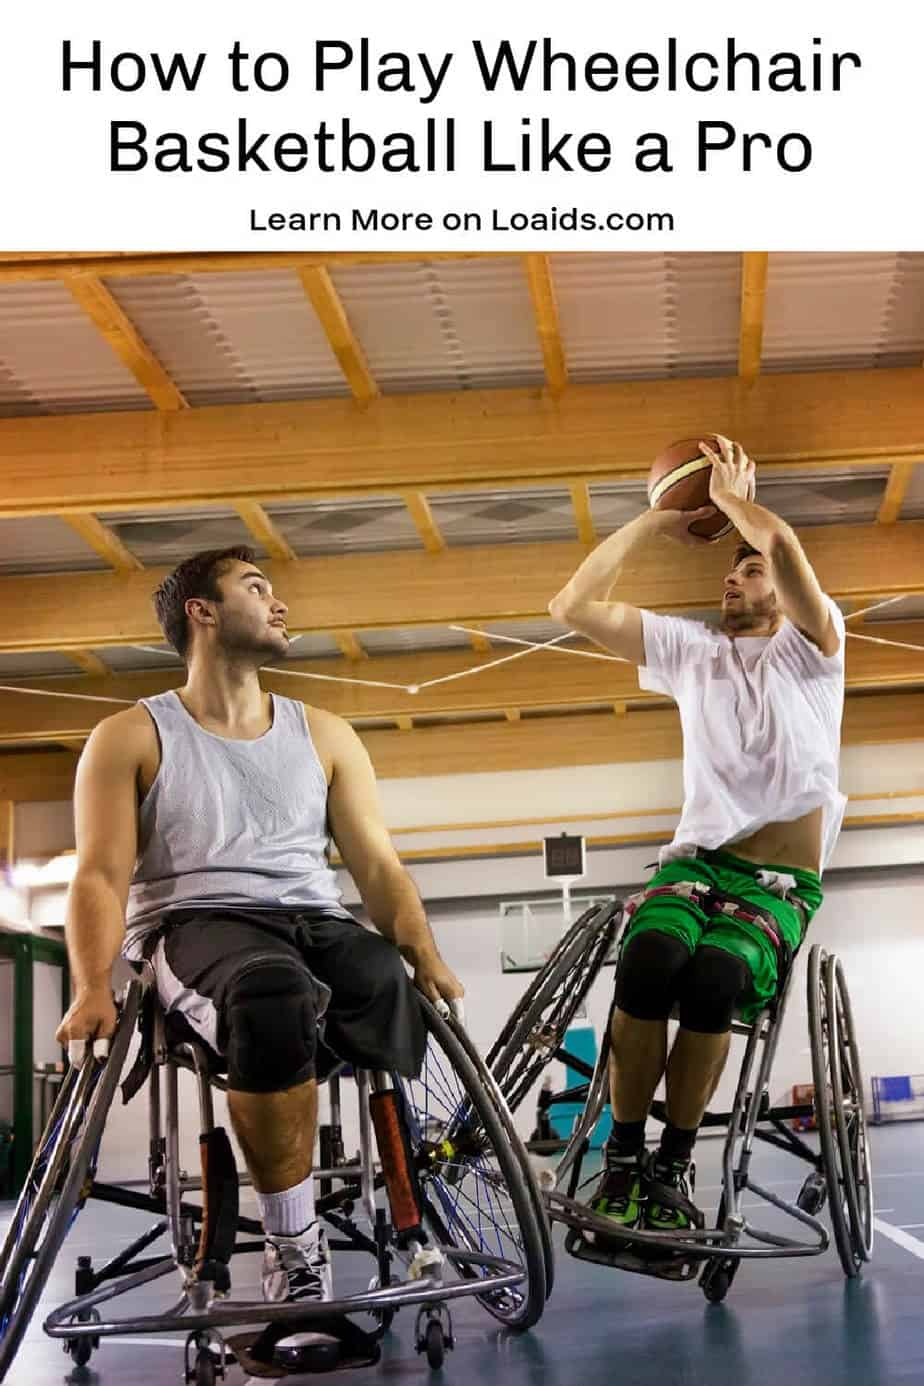 Want to learn how to play wheelchair basketball like a pro? Check out our in-depth guide to the rules, regulations and more!